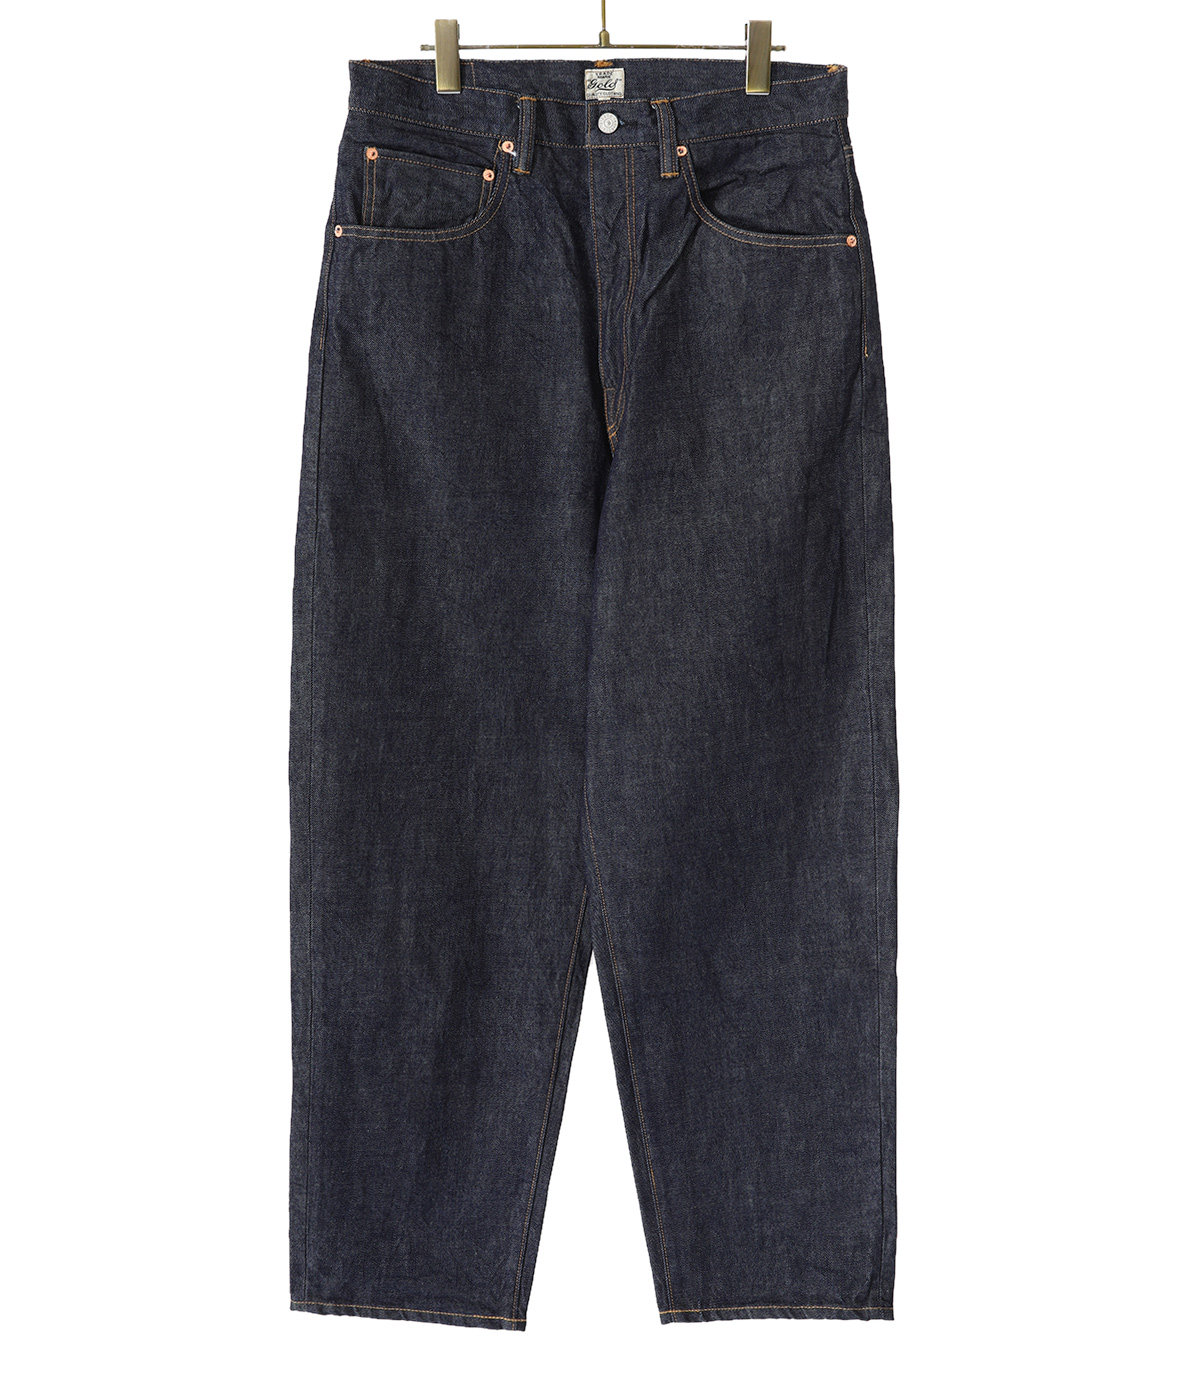 【予約】14oz. DENIM 5POCKET WIDE PANTS